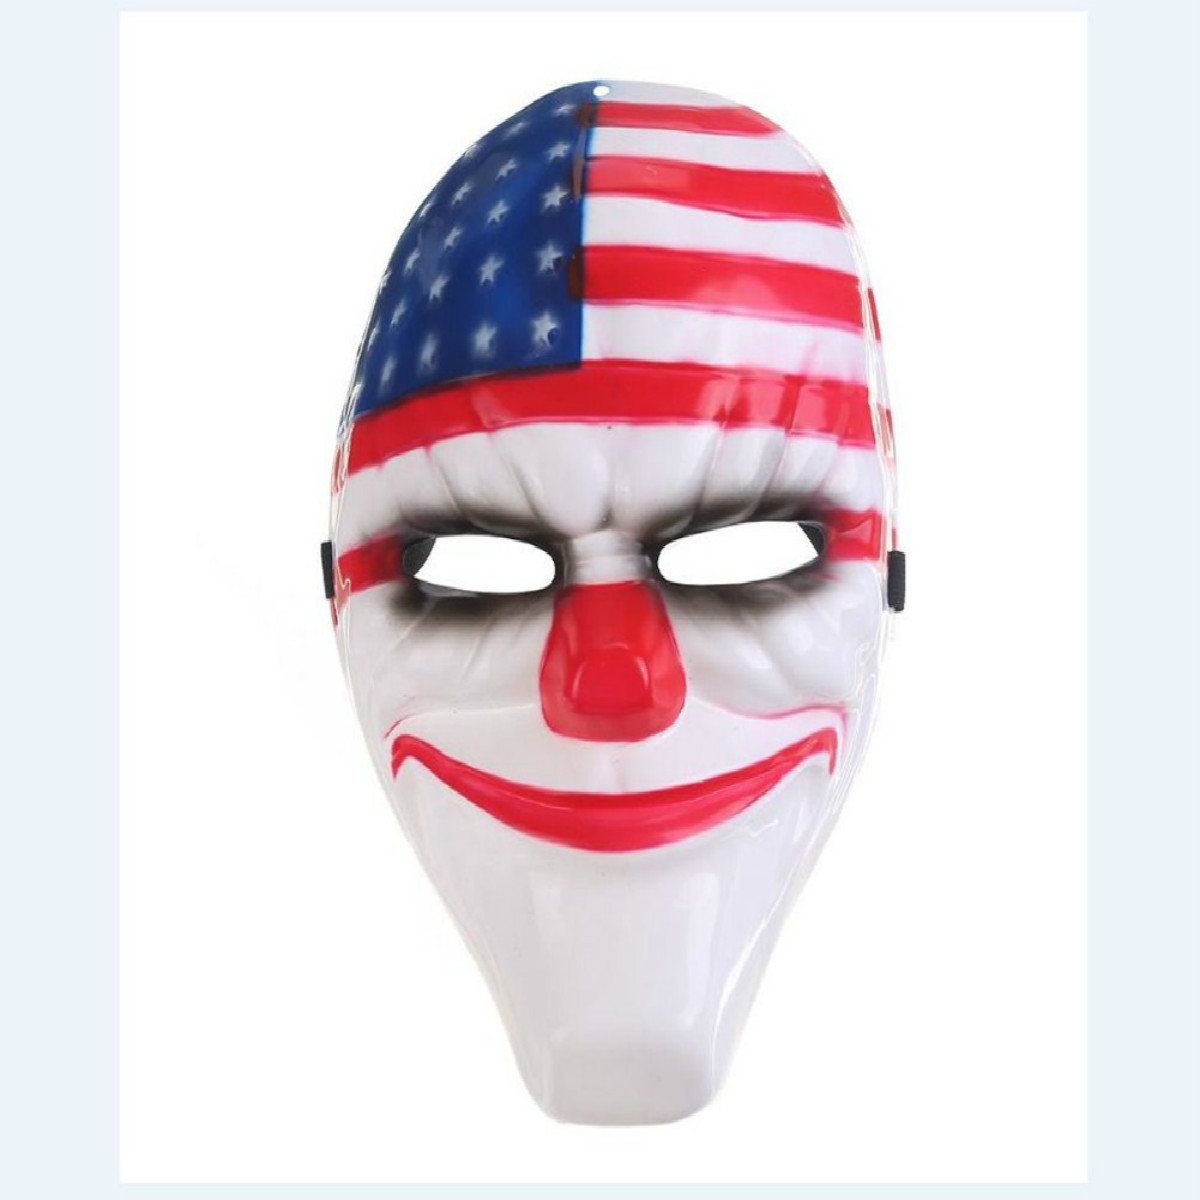 Adult Full Face Scary Prop Hockey Red Head Killer Clown Halloween Costume Cosplay Creepy Mask